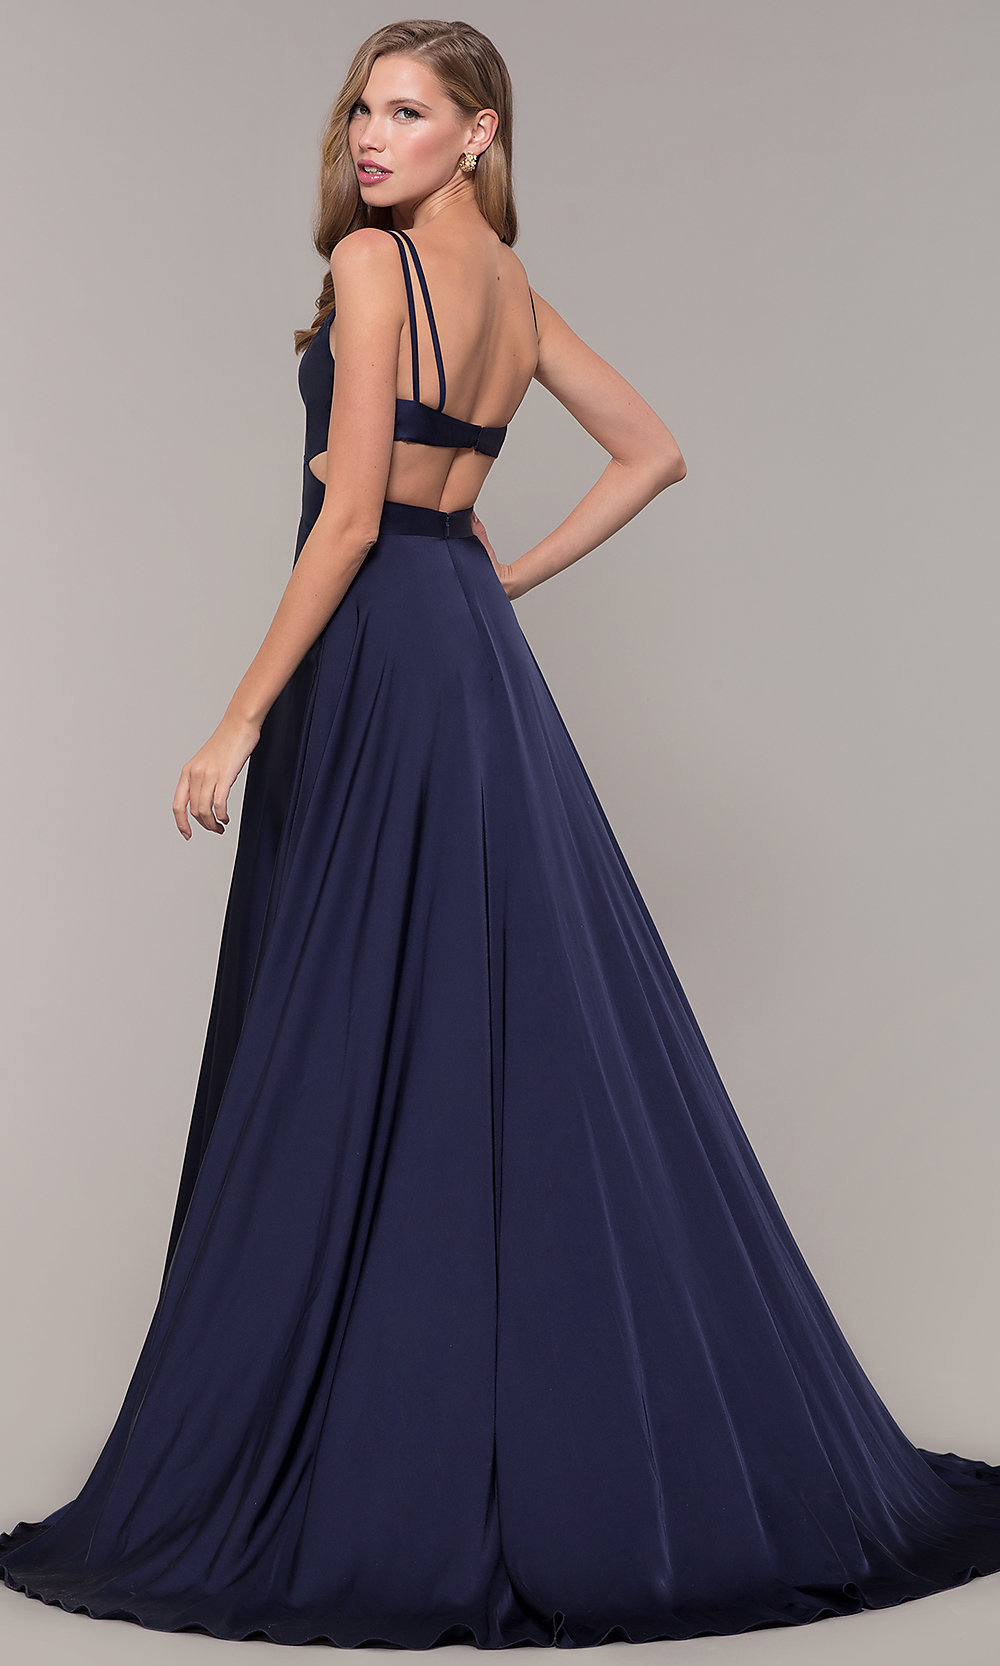 56903fbecb26 Long Alyce Formal Dress with Back Cut Out